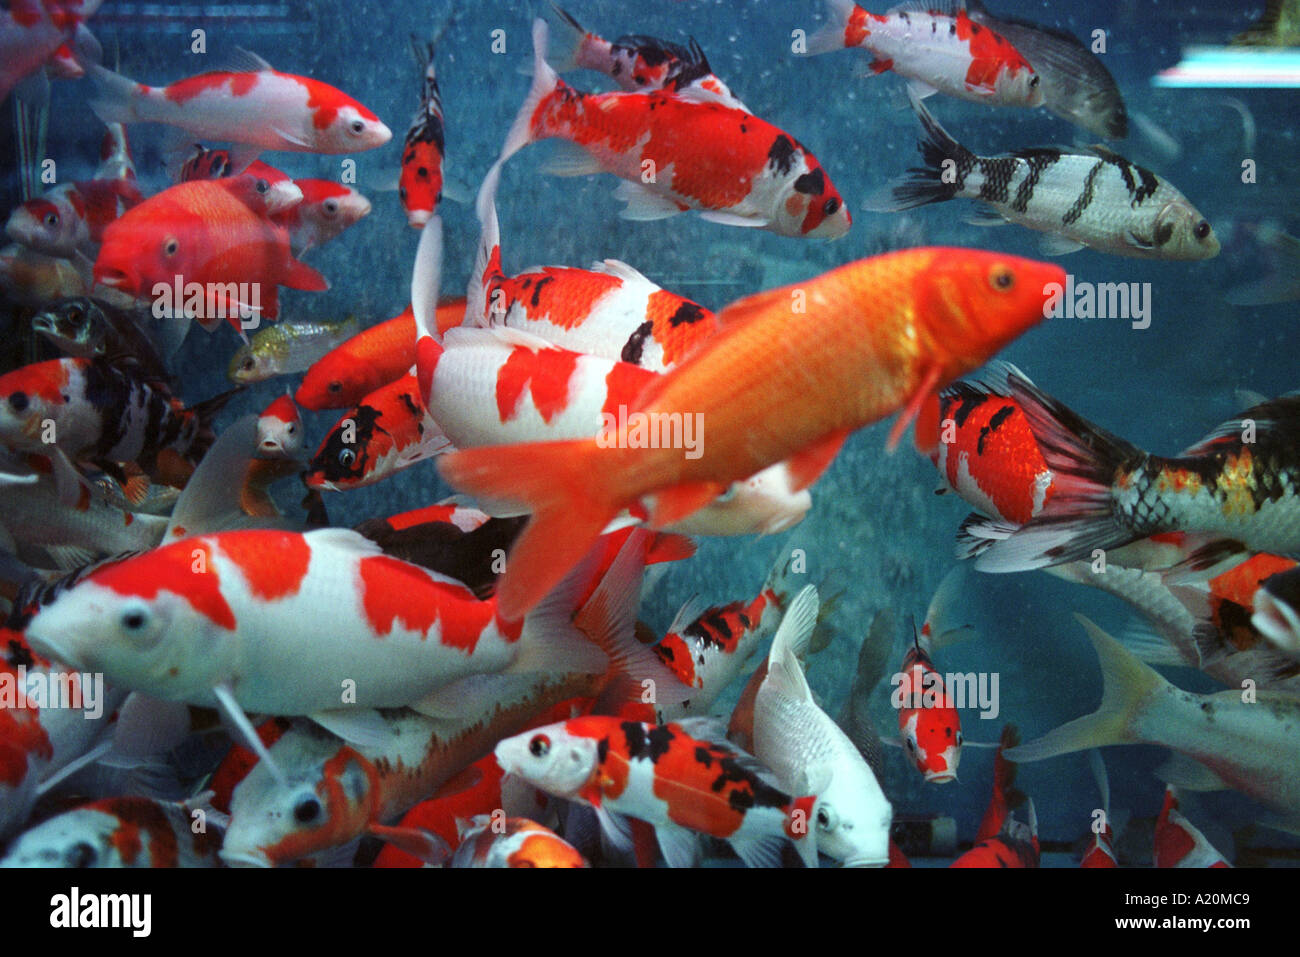 koi carp fish charms of financial prosperity for sale in